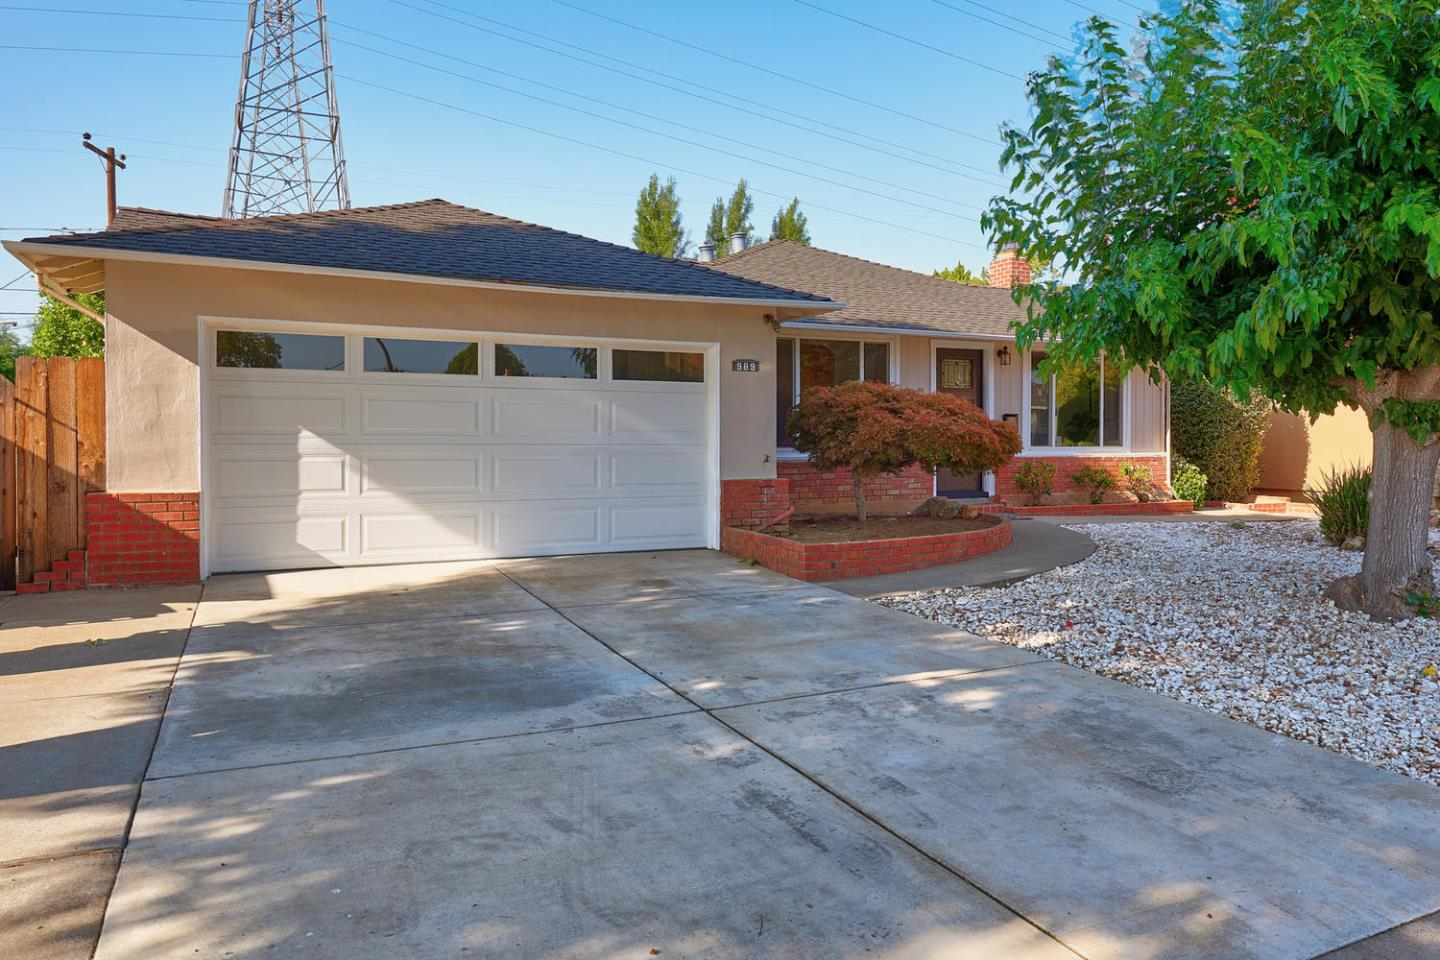 989 CAMBRIDGE AVE, SUNNYVALE, CA 94087